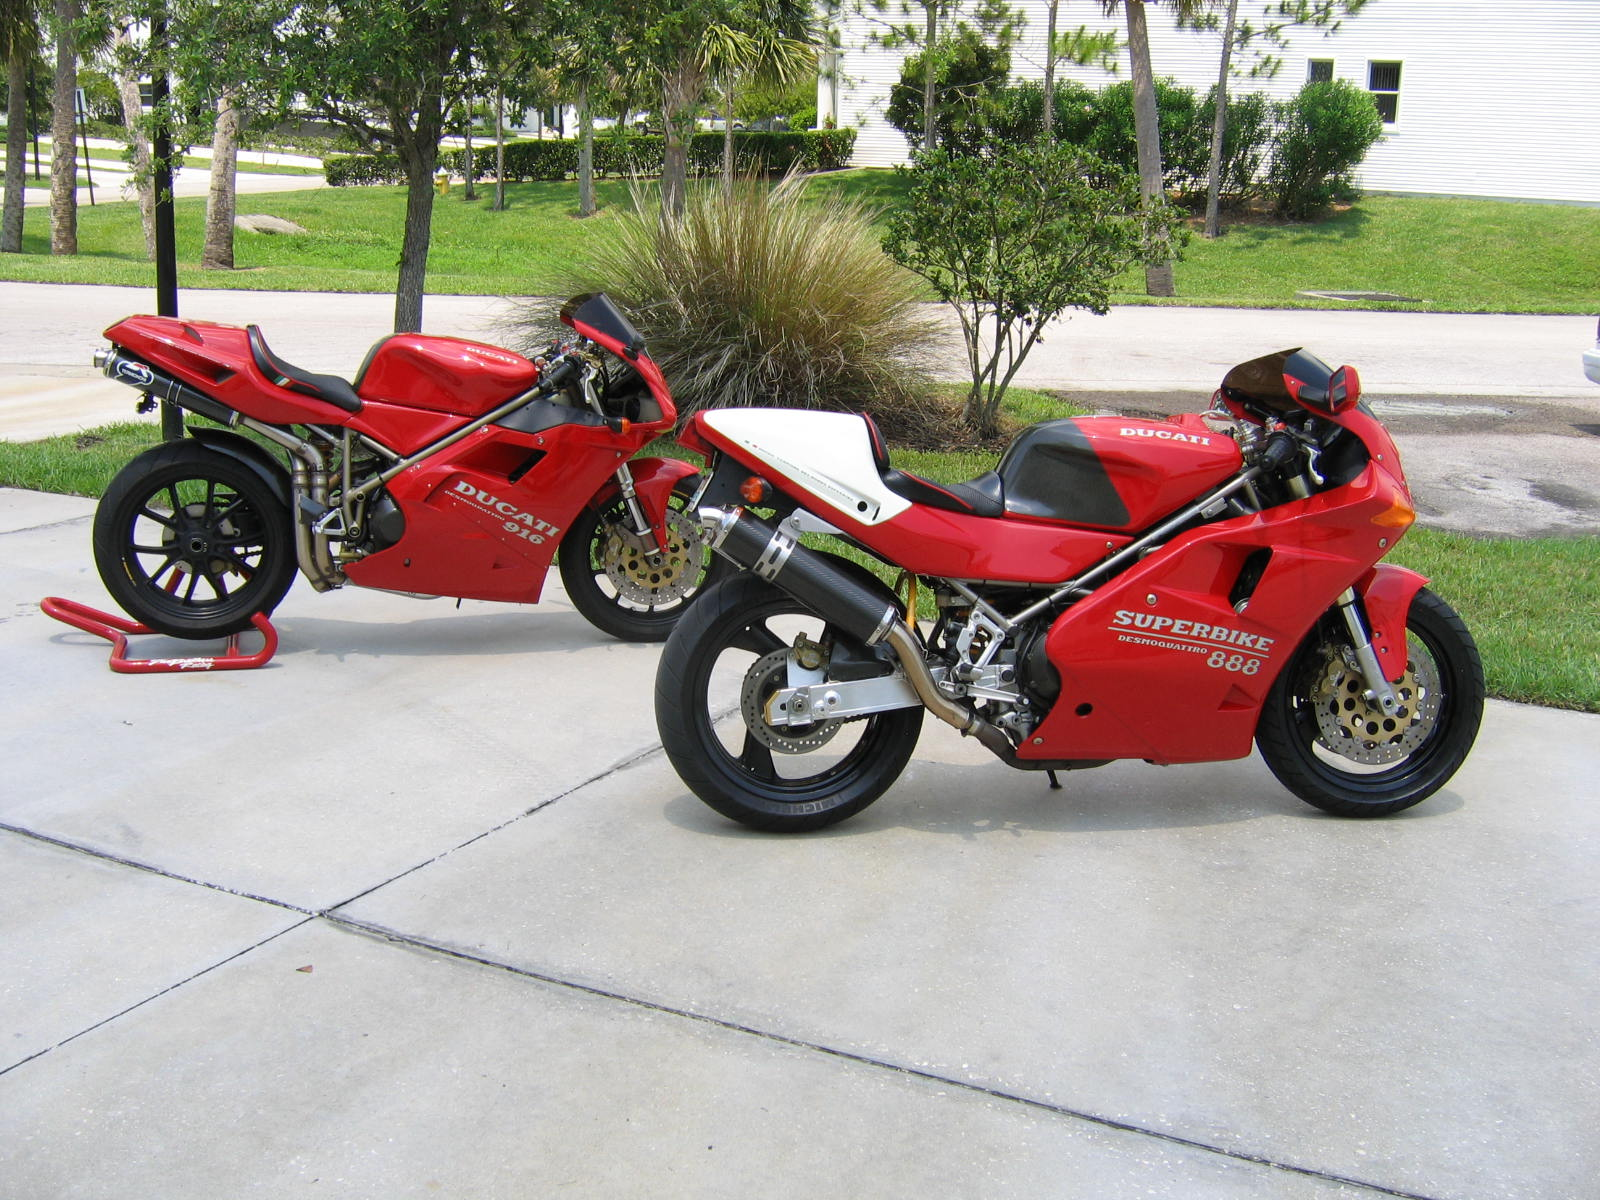 851/888 pics and chat. - ducati.ms - the ultimate ducati forum